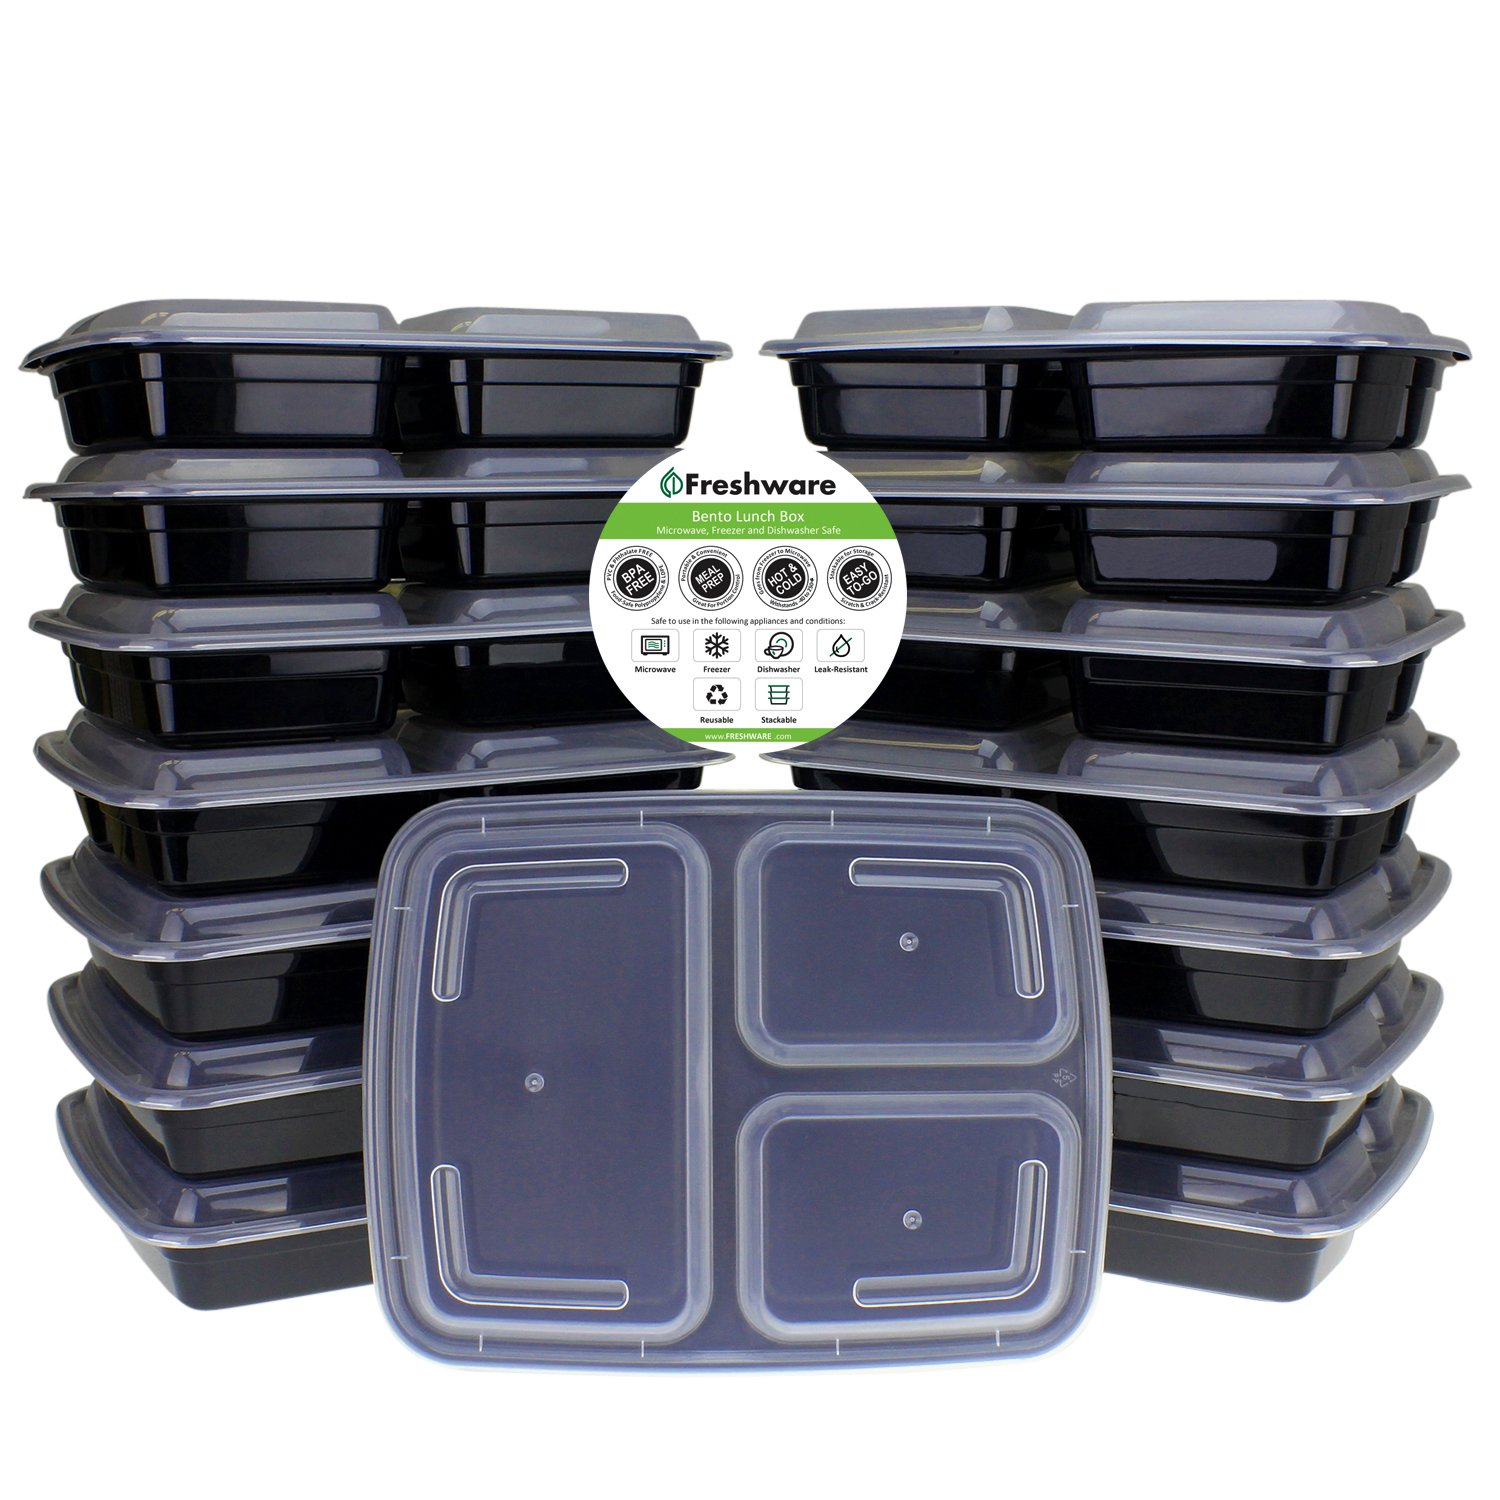 Freshware 15-Pack 3 Compartment Bento Lunch Boxes with Lids